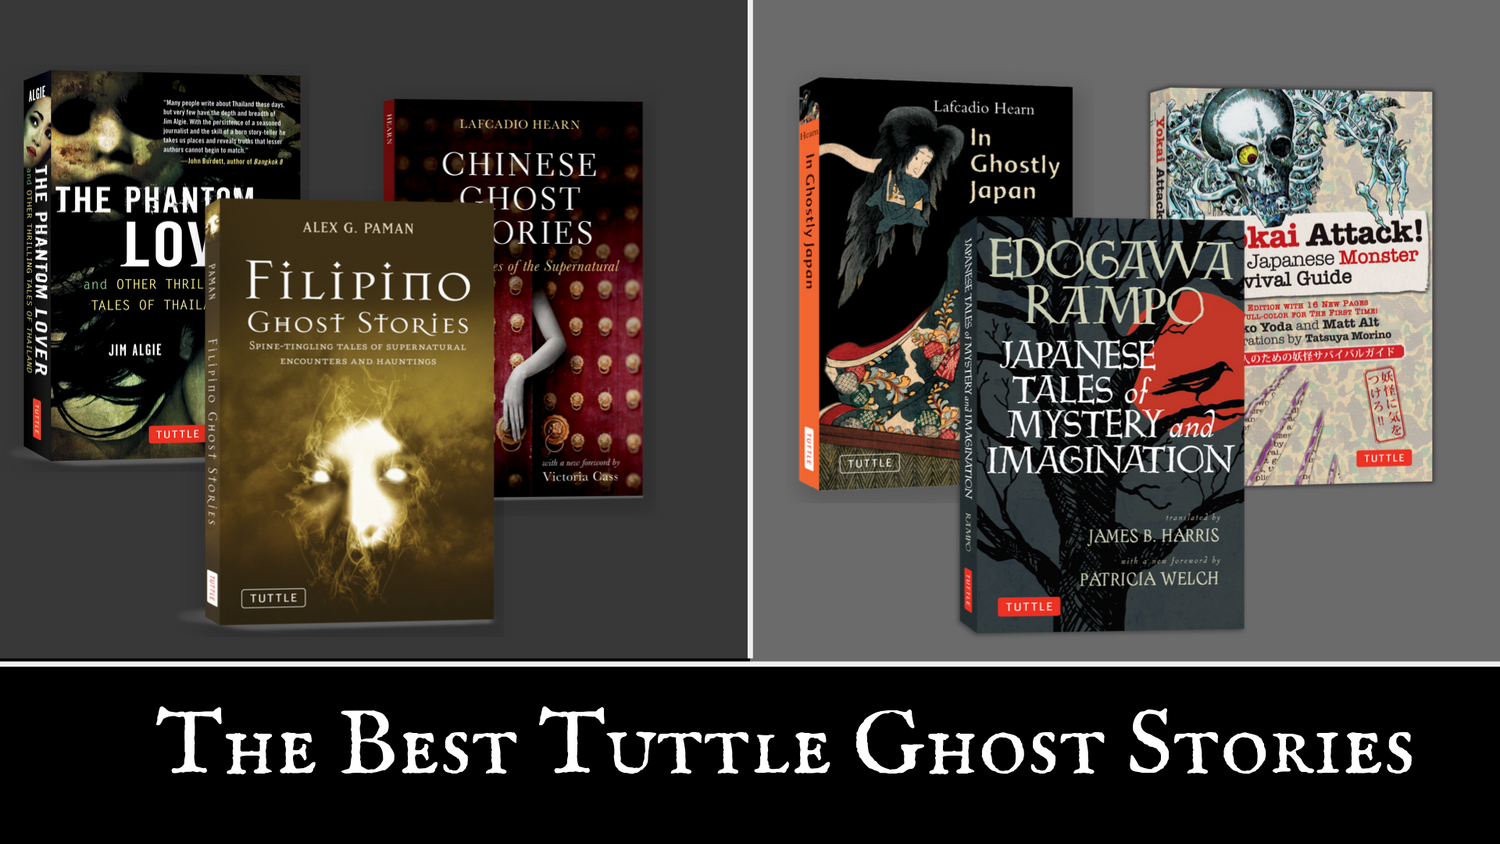 The Best Tuttle Ghost Stories